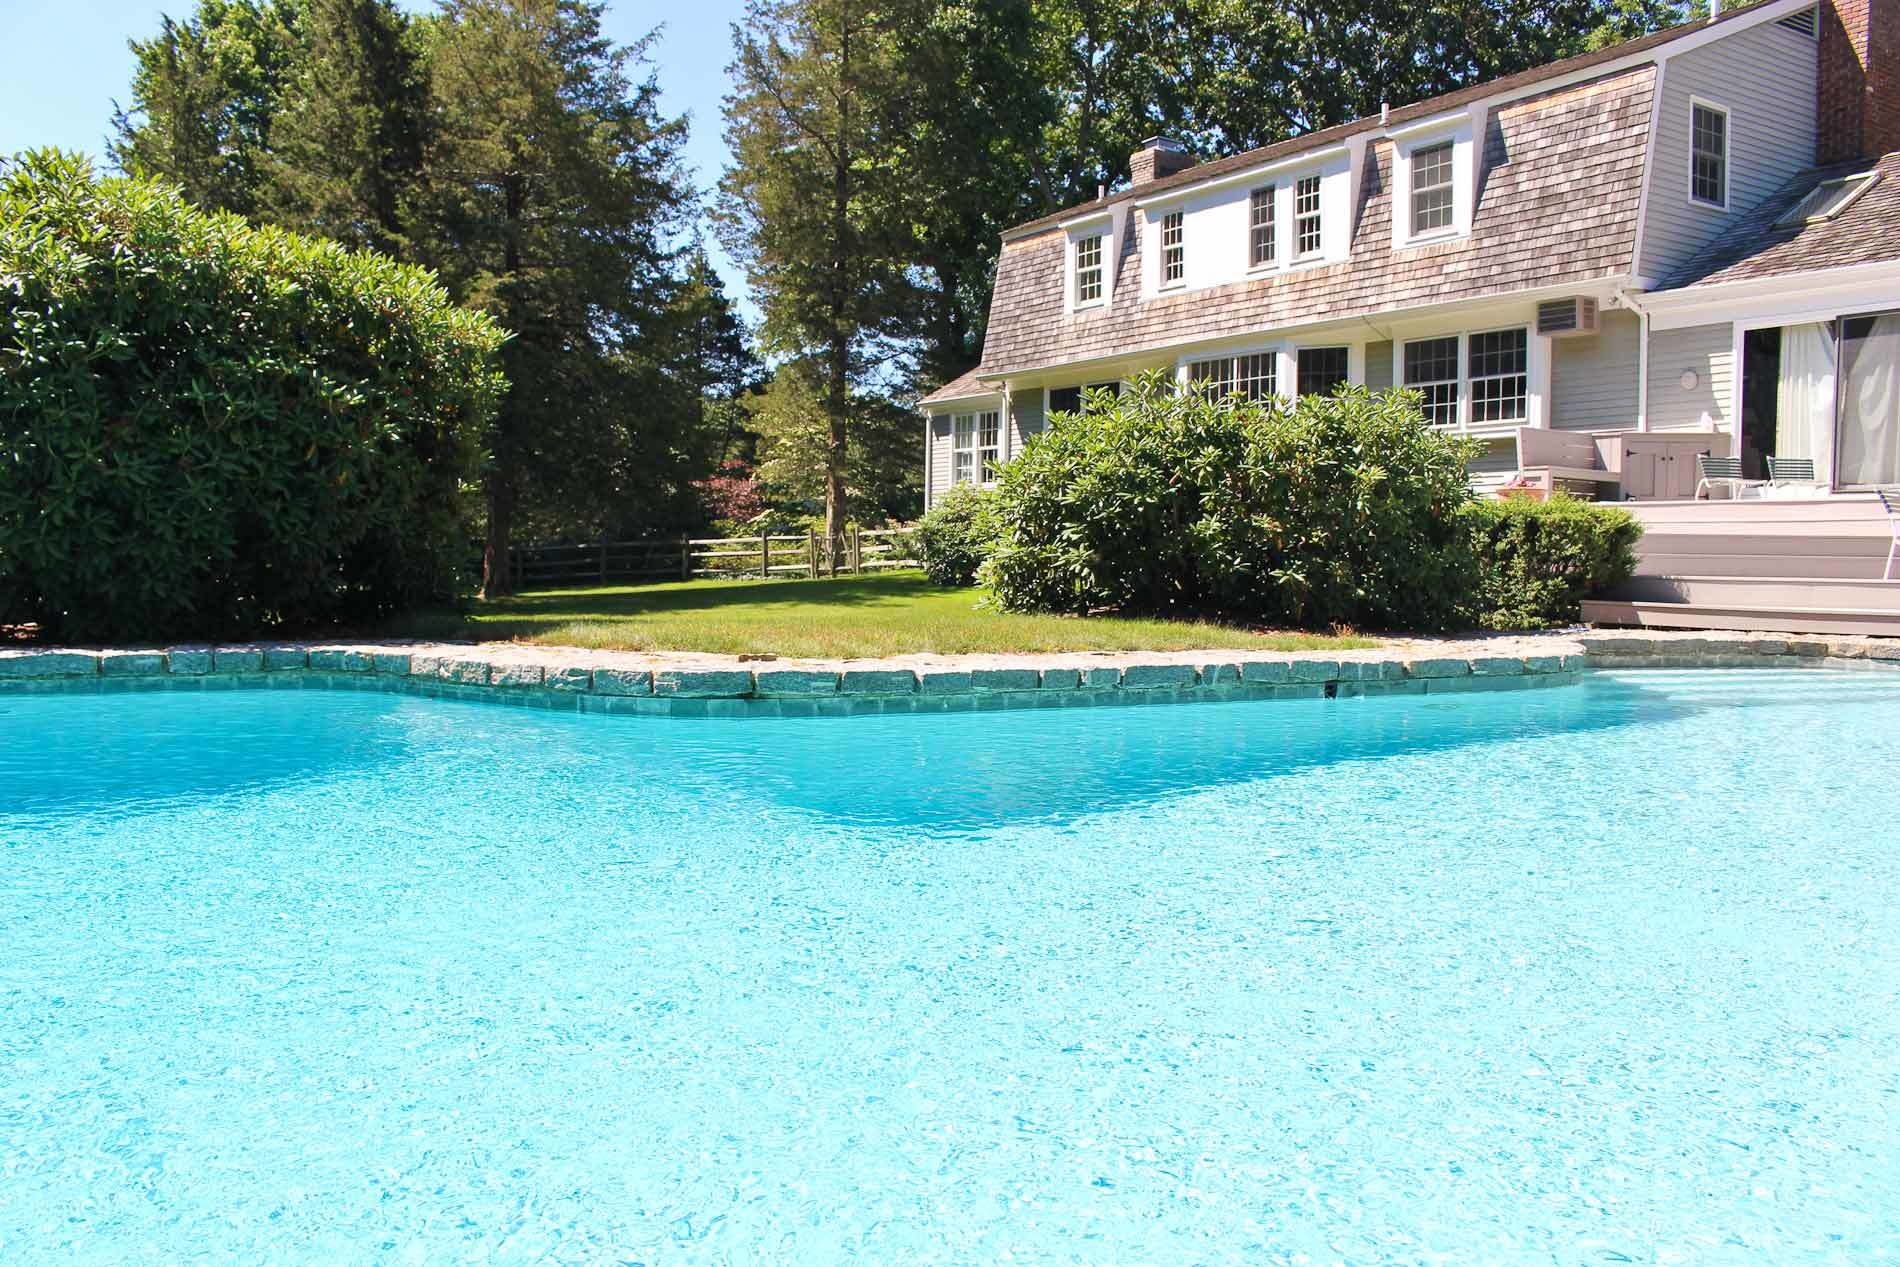 Homes With Swimming Pool For Sale In Danbury Ct Find And Buy Houses With Pool Dagny 39 S Real Estate